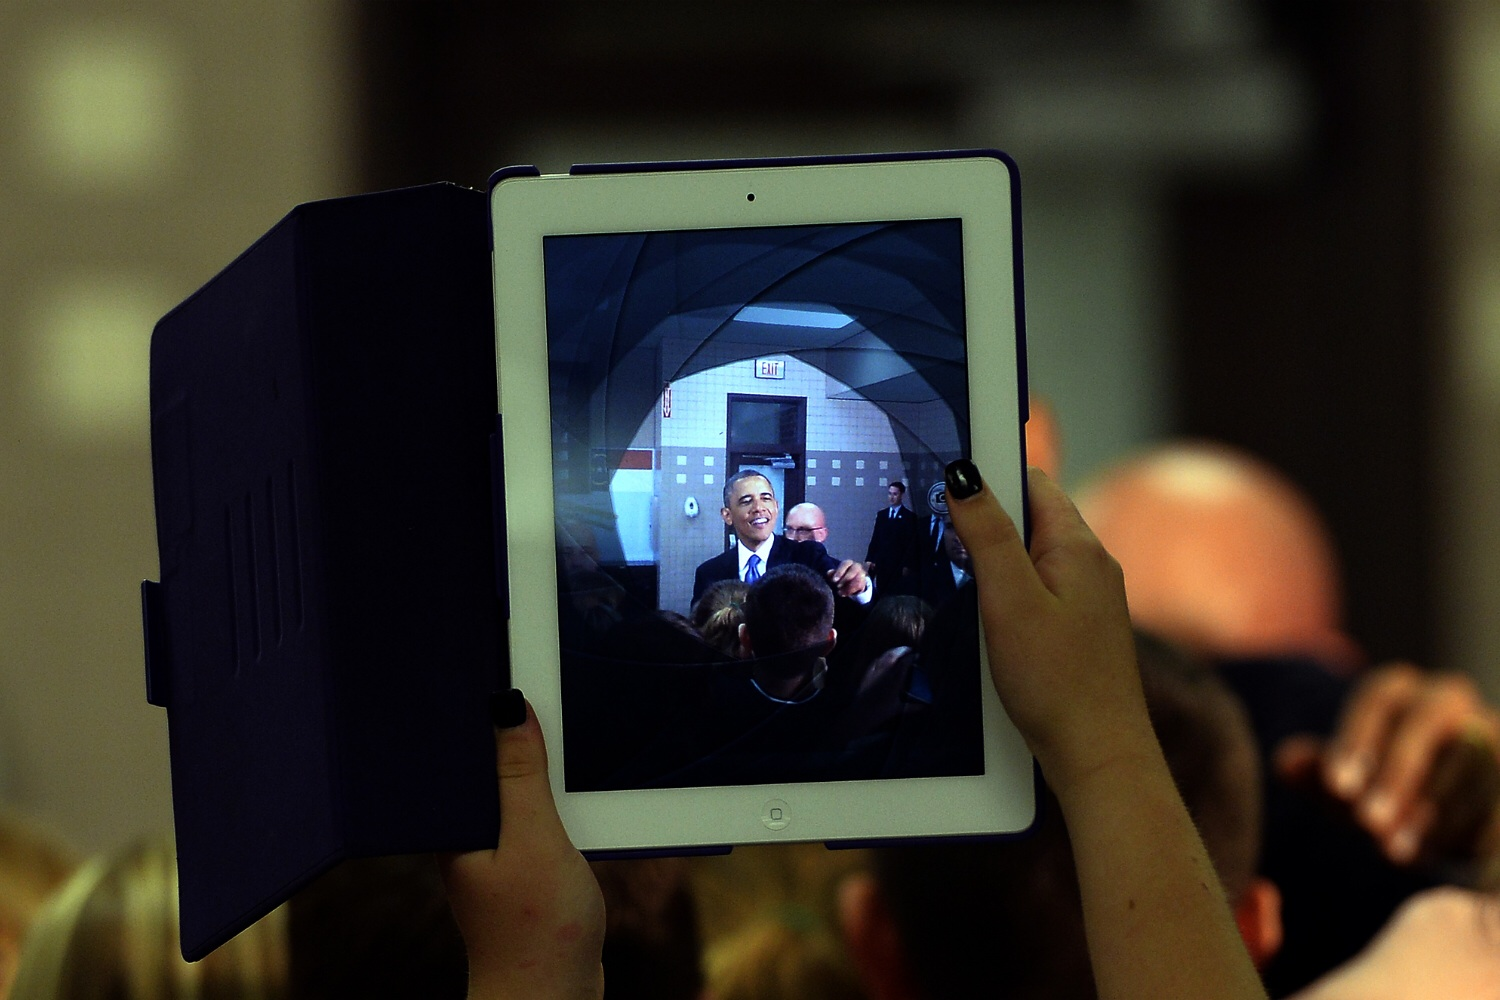 A student at Mooresville Middle School in Mooresville, North Carolina takes a photo of President Barack Obama on an iPad on June 6, 2013